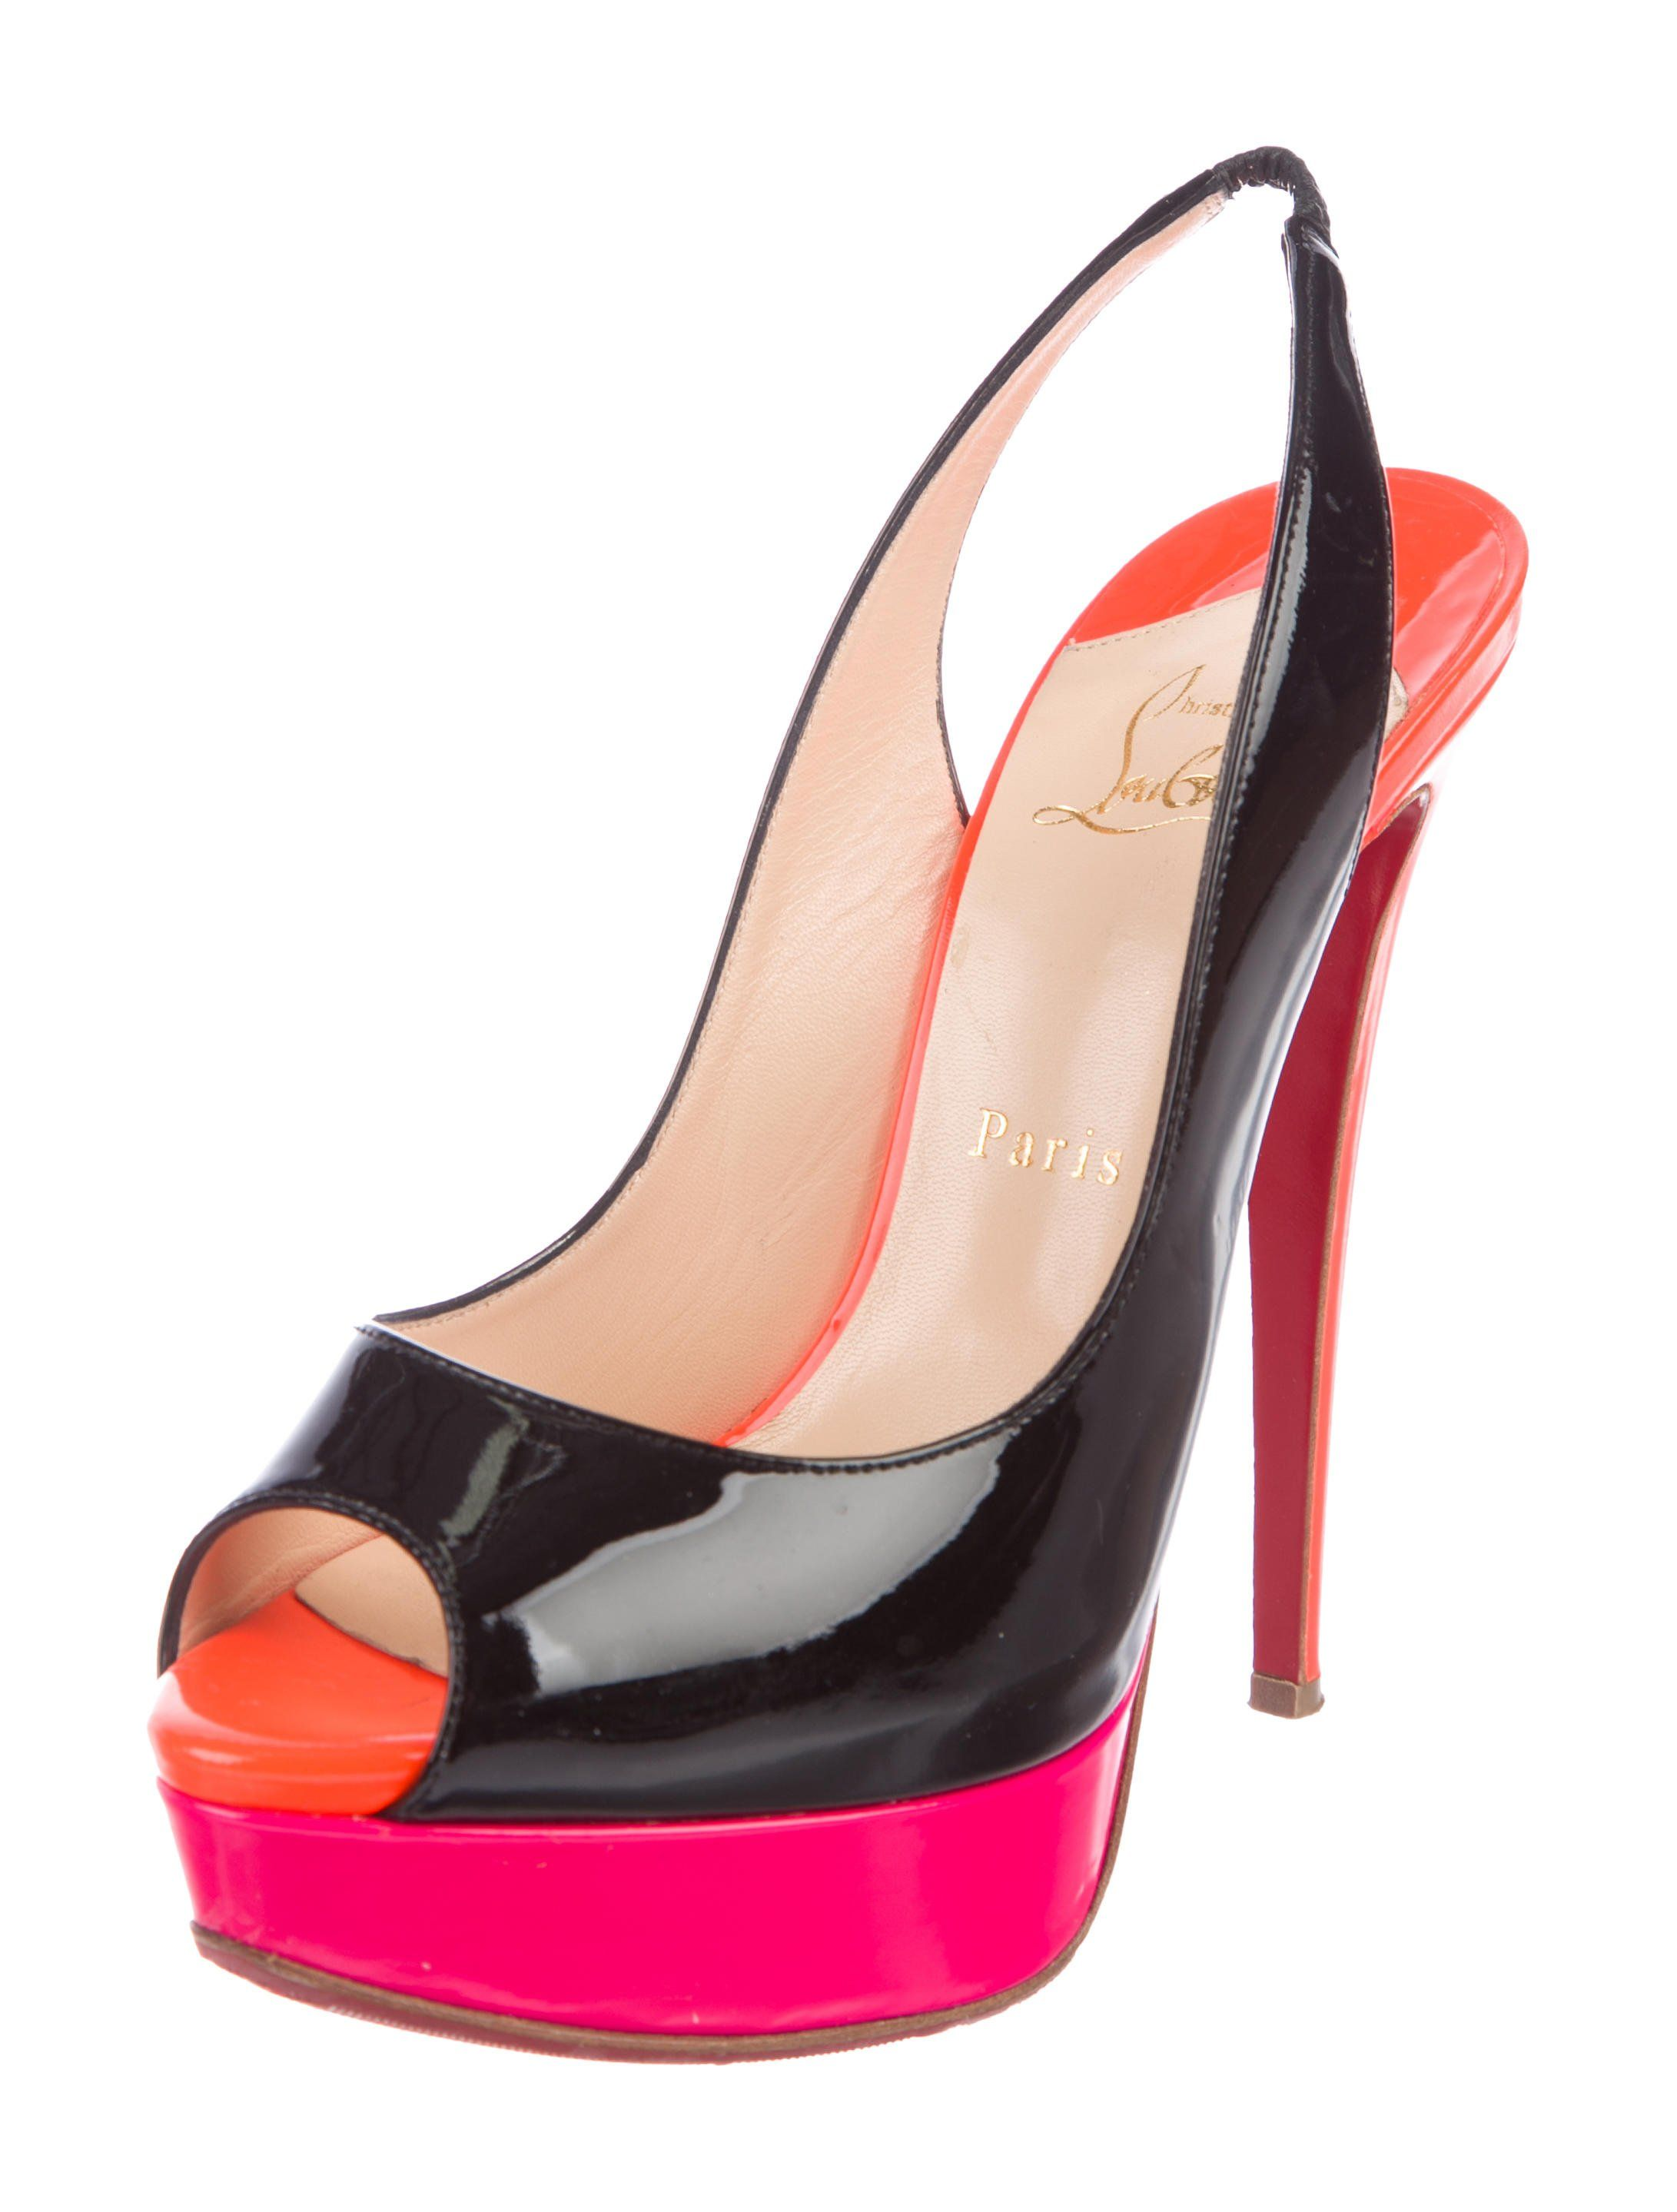 outlet store bb681 127c9 Lady Peep Colorblock Pumps | Women Fashion For Work Casual ...